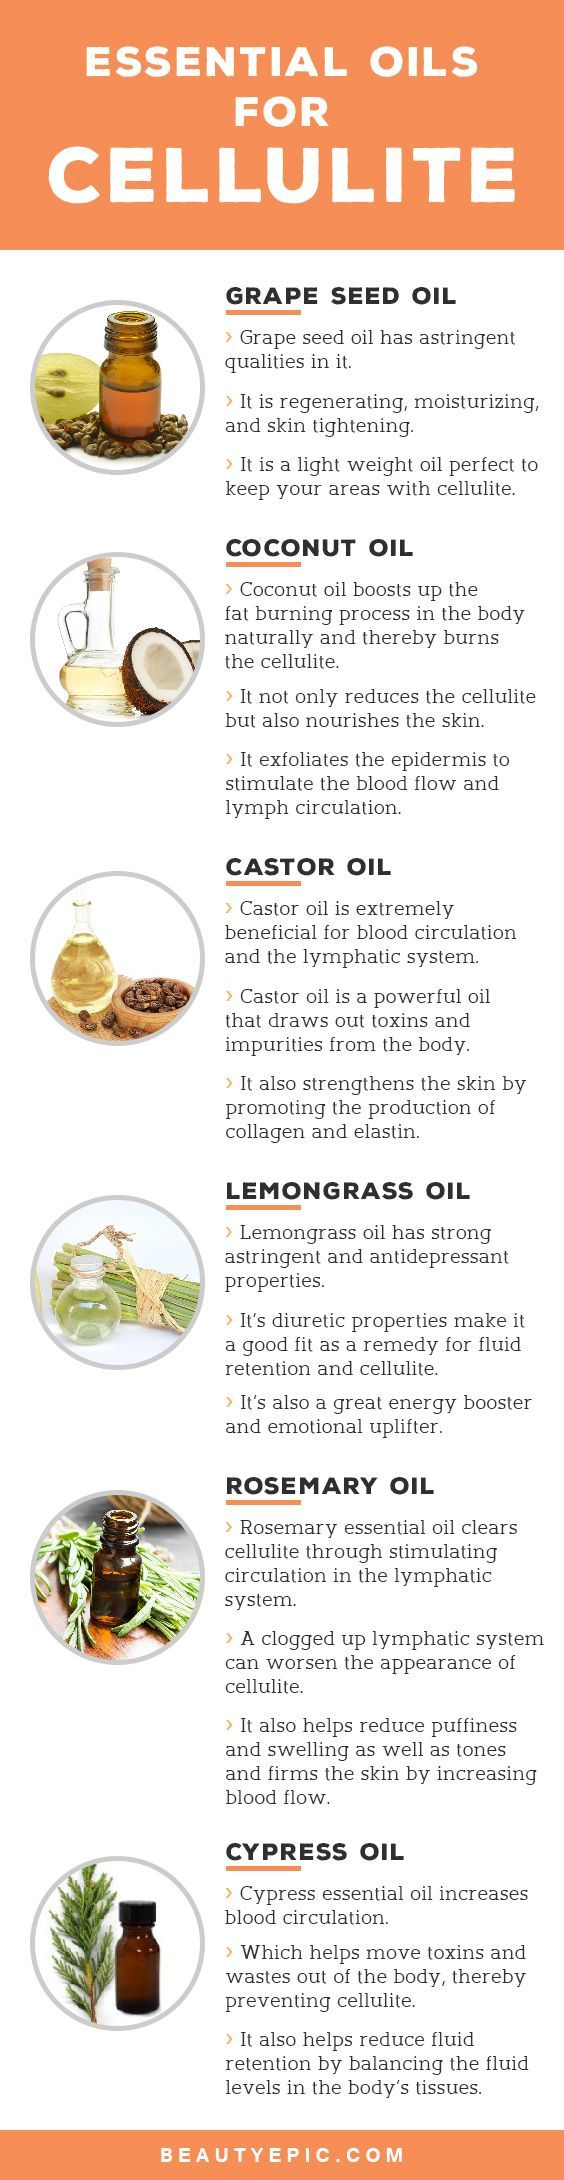 Top 9 Essential Oils for Cellulite Reduction – Benefits and How to Use